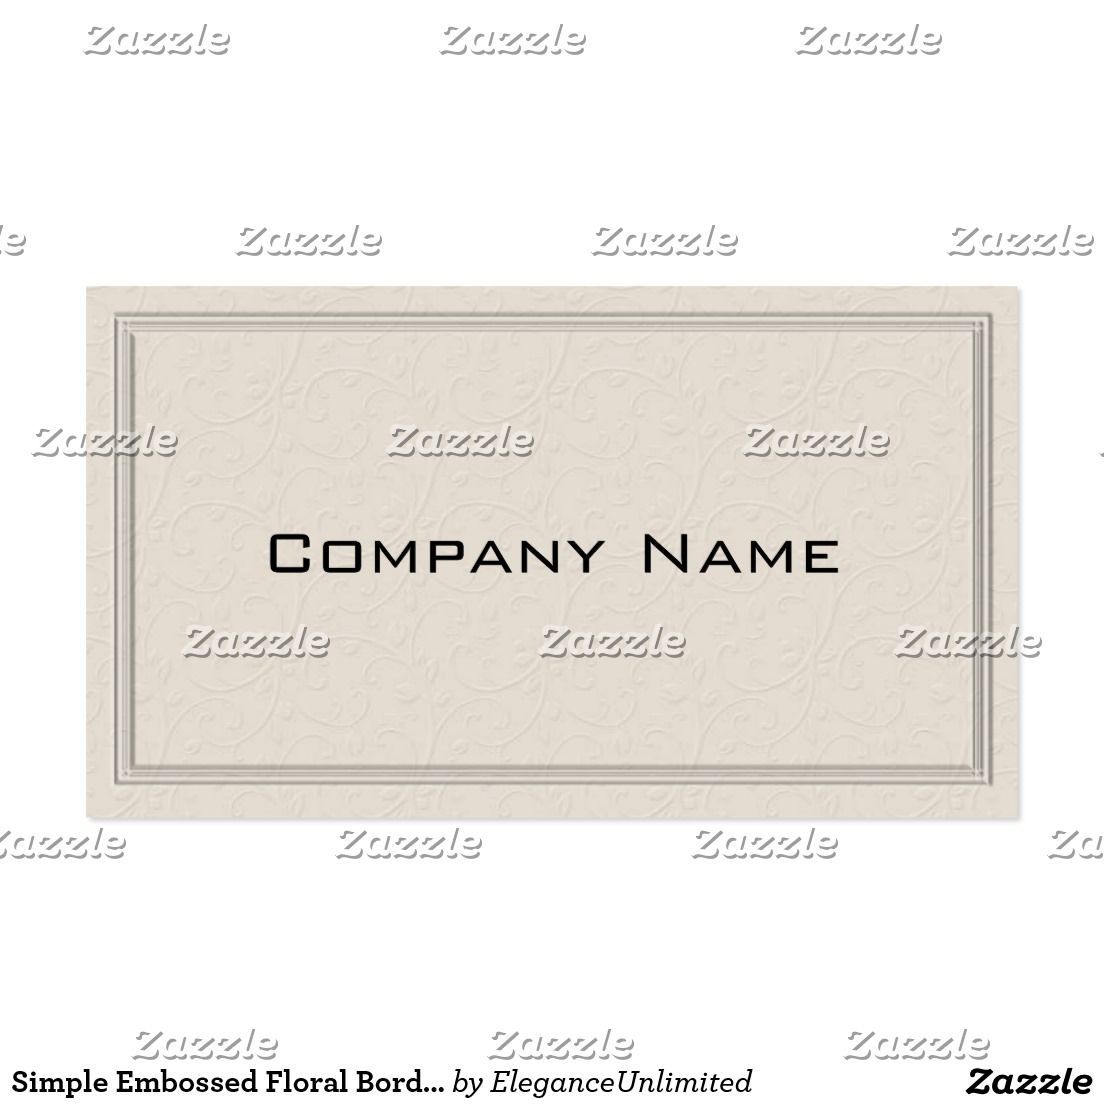 Simple embossed floral border business card business cards simple embossed floral border business card reheart Image collections